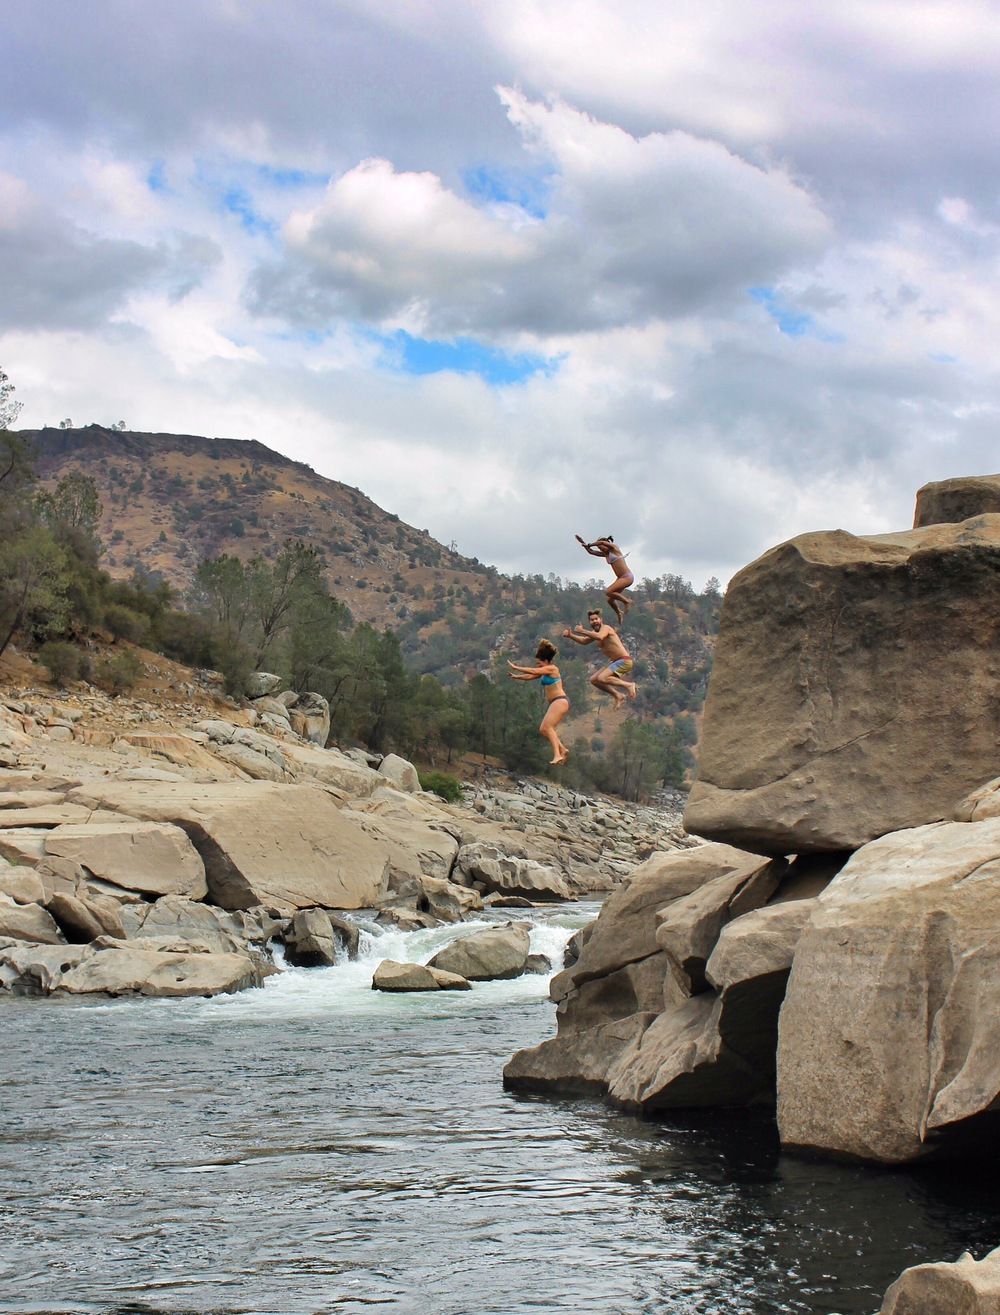 Rock jumping on the San Joaquin River